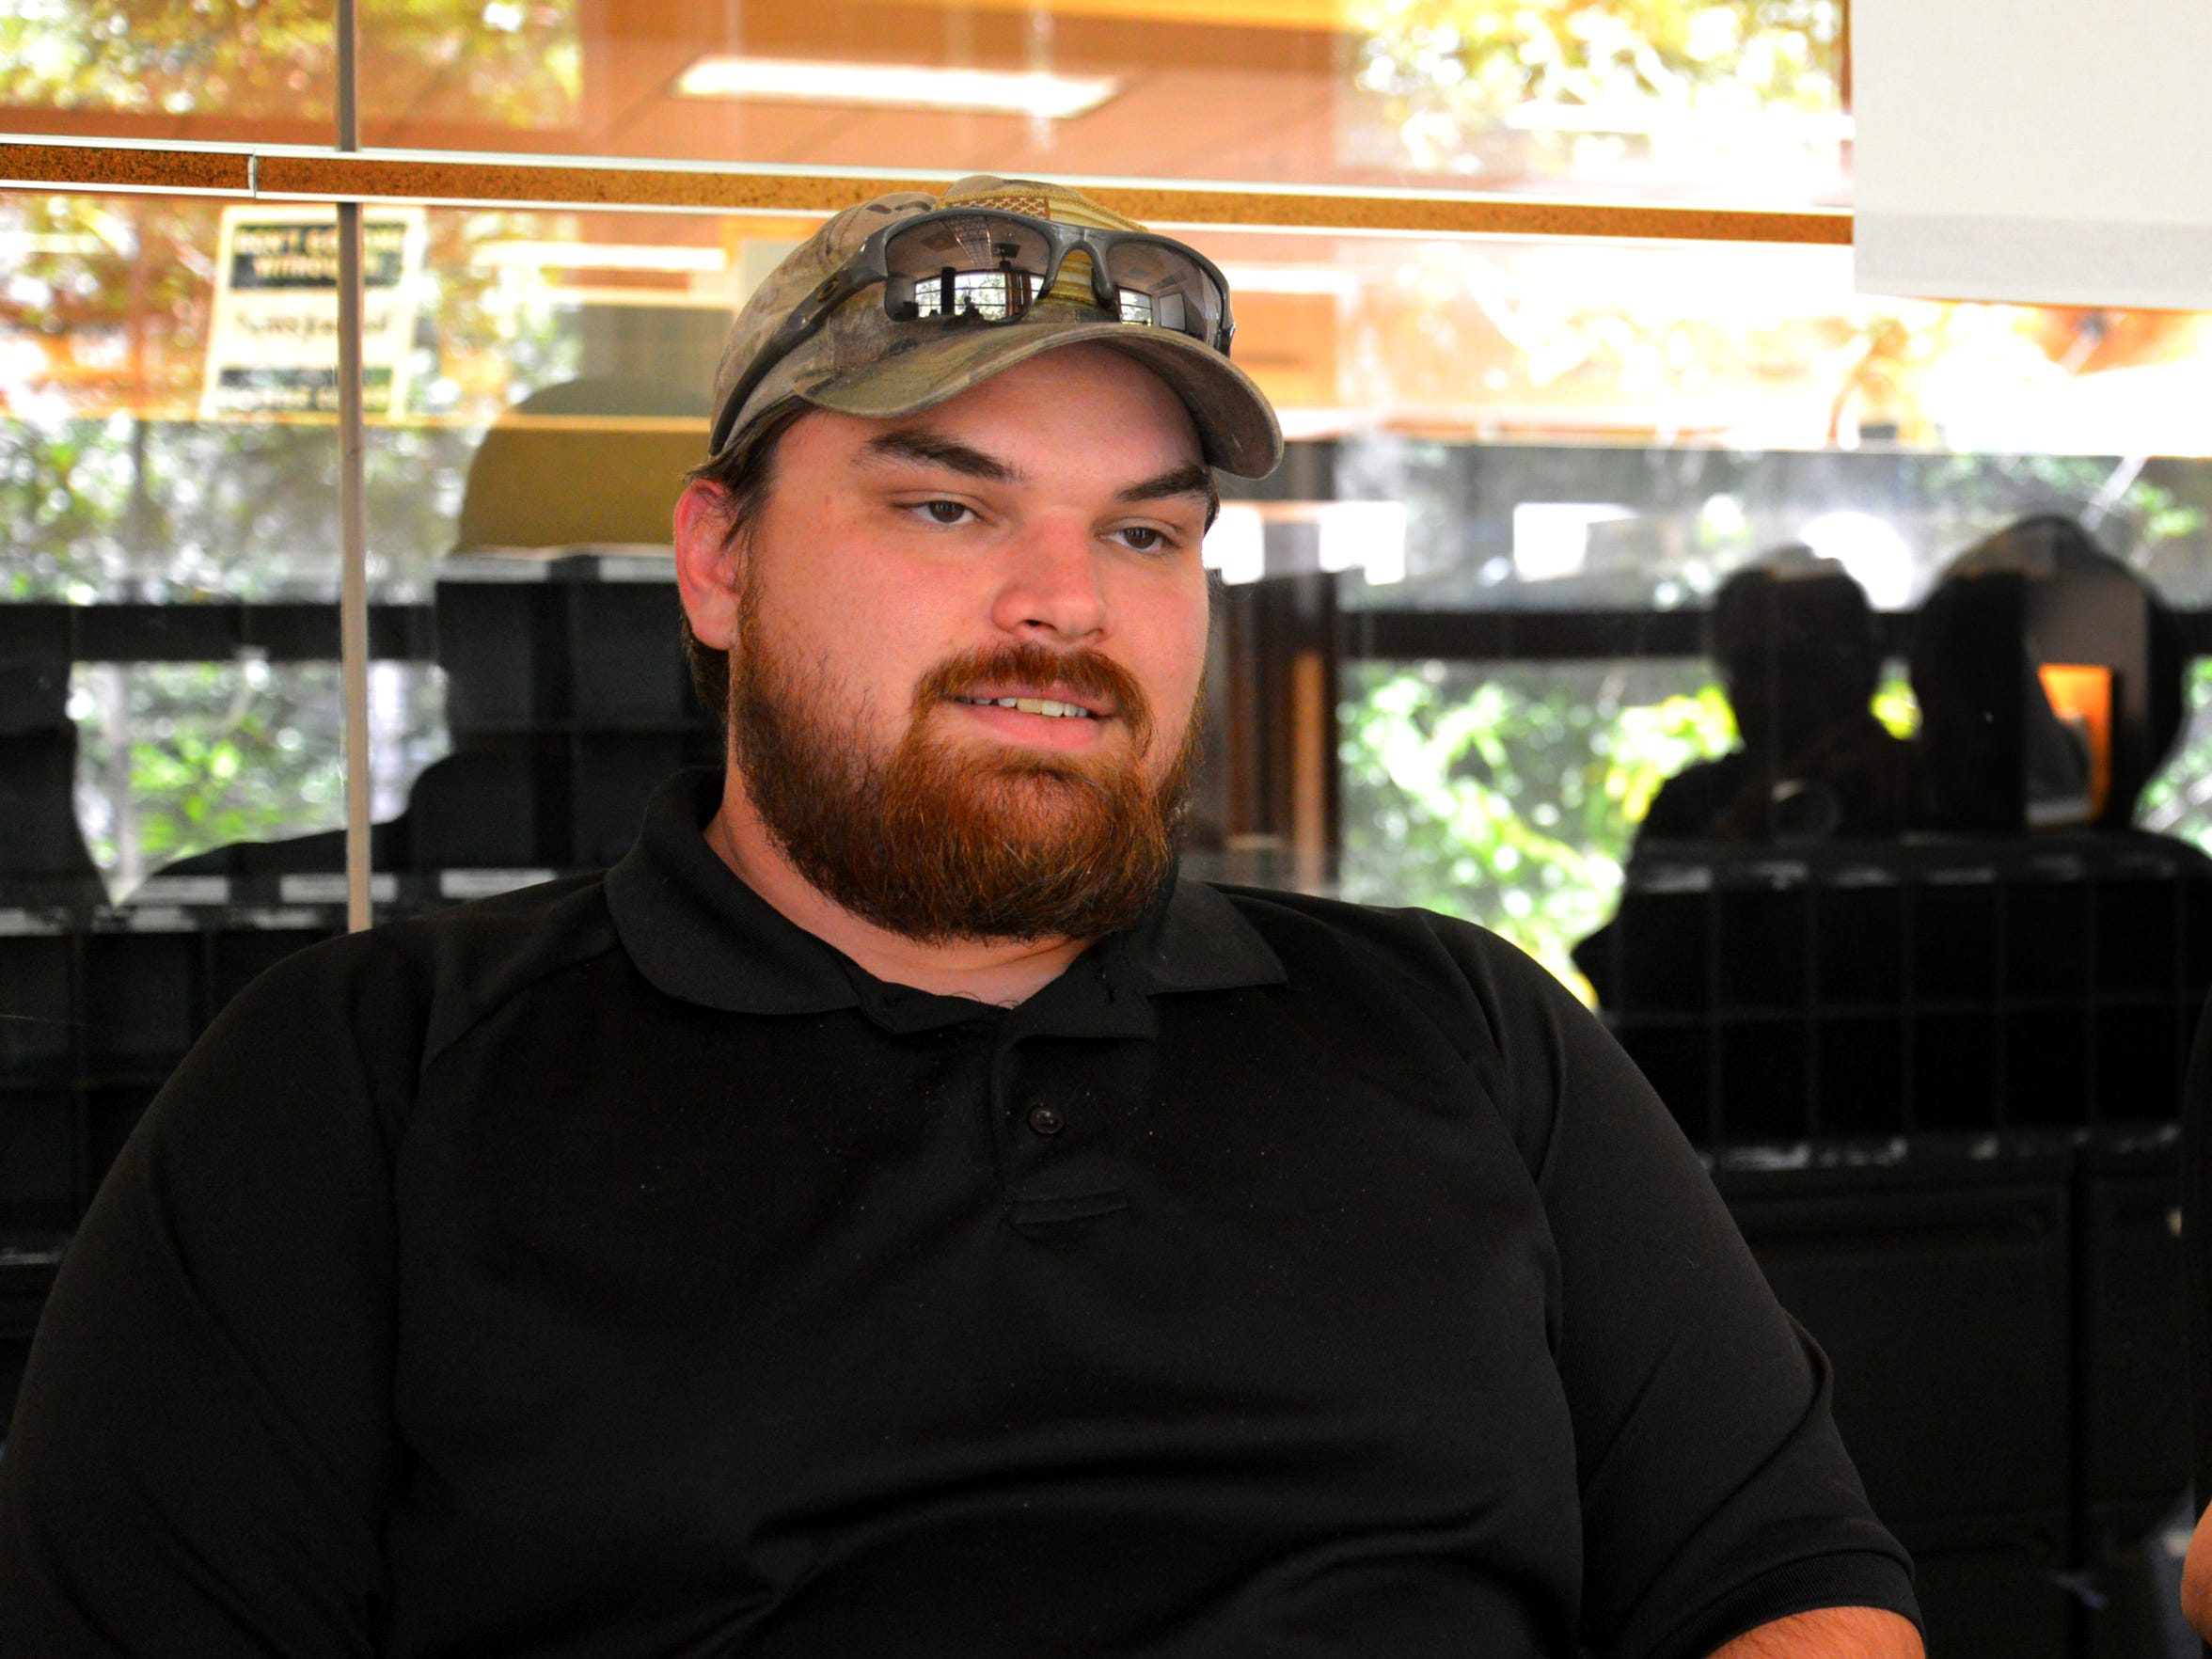 Ethan Wagner, veteran who lives in Palm Bay, received a home through the Homes for Warriors program.